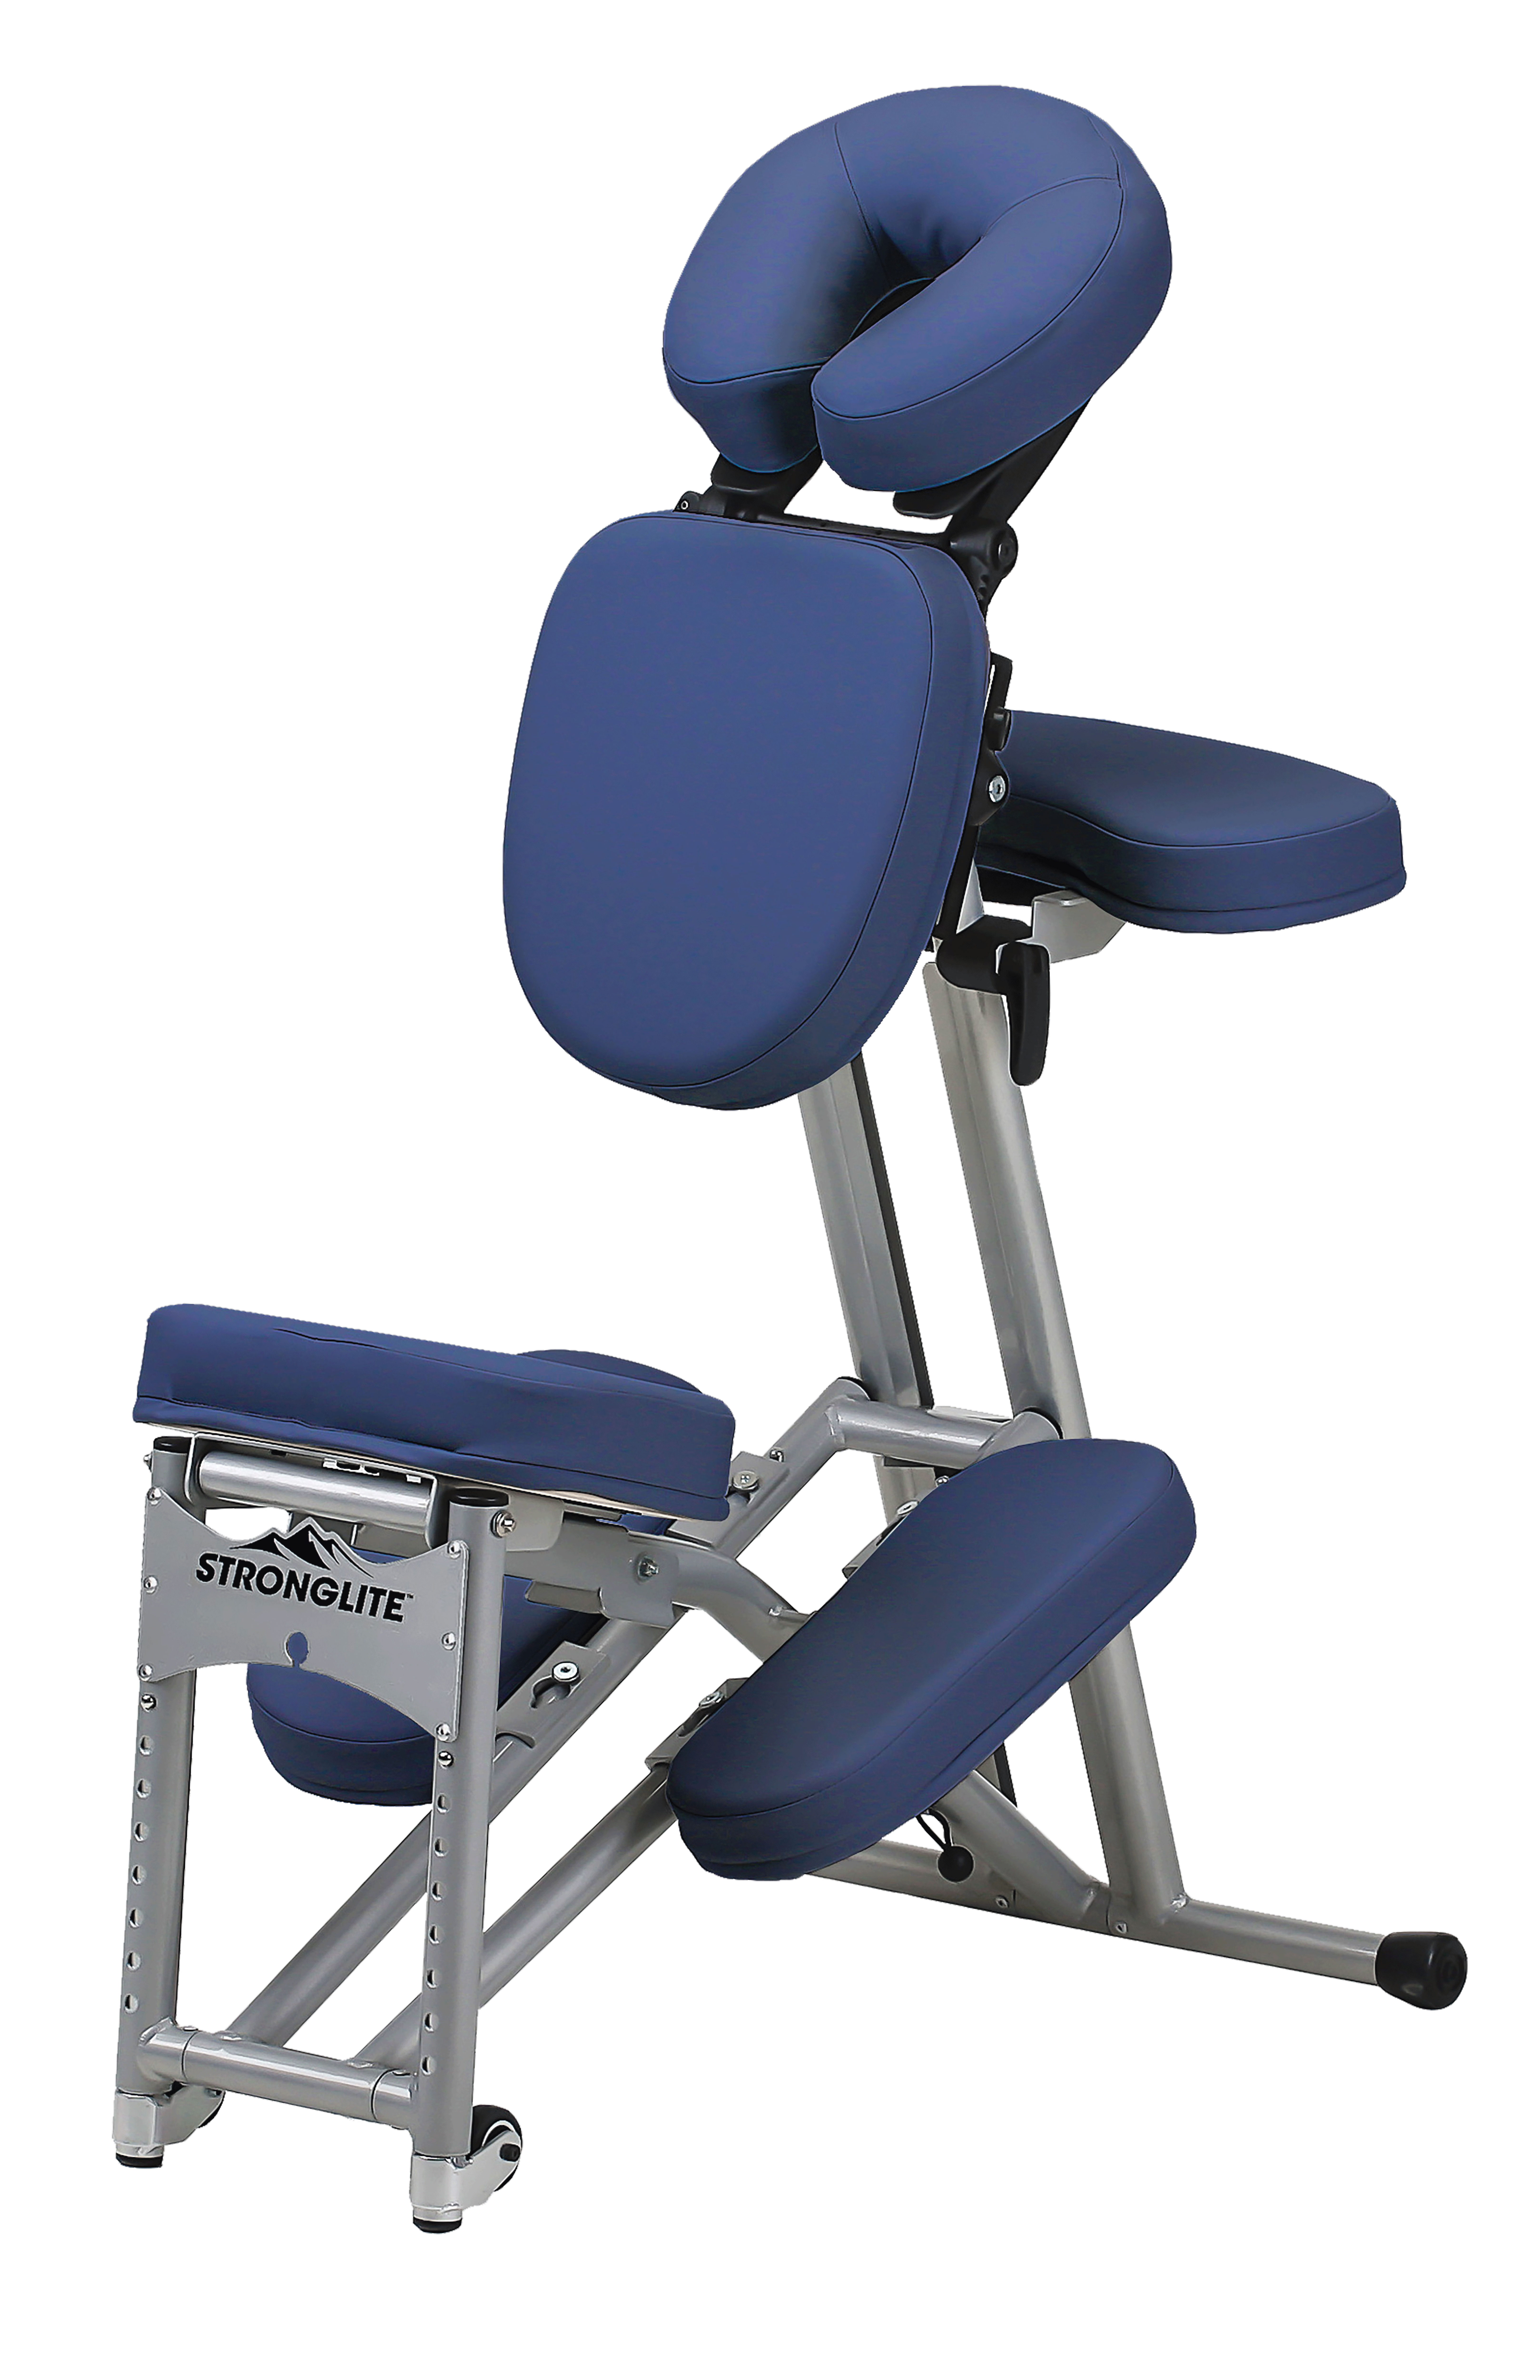 Stronglite Ergo Pro II Portable Massage Chair & Carrying Case